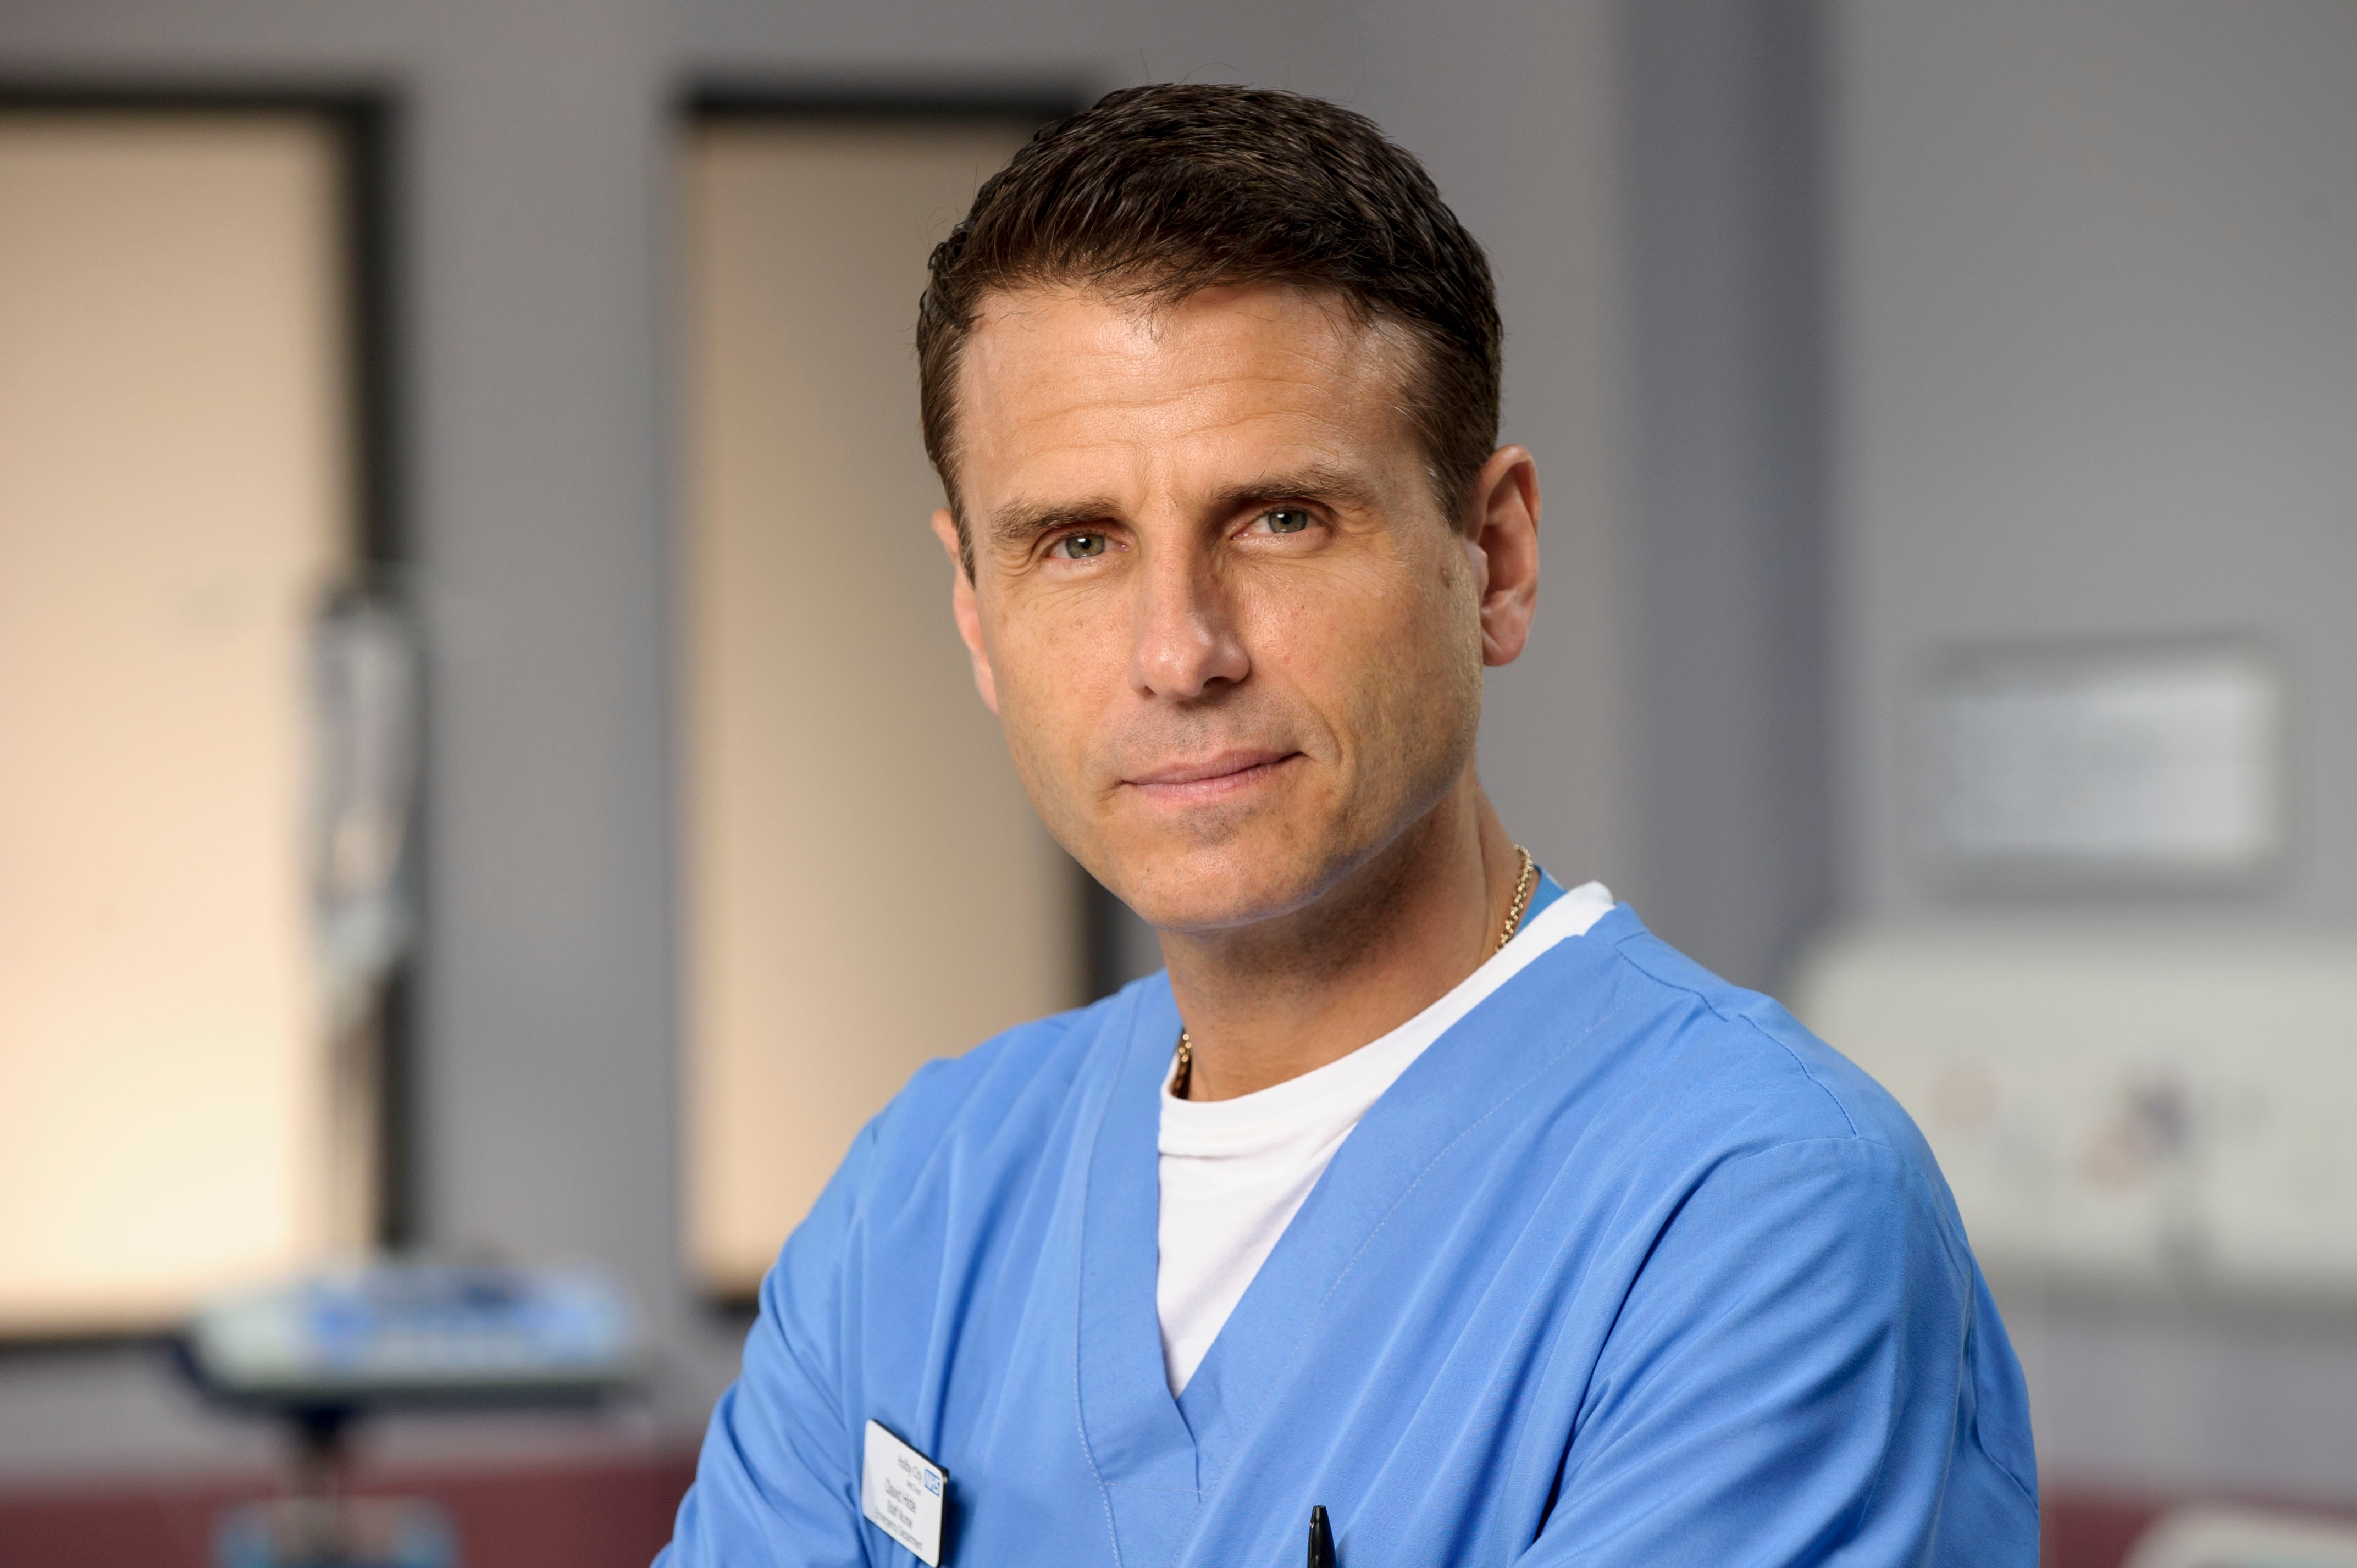 Programme Name: Casualty - Portraits - TX: n/a - Episode: Casualty - Portraits (No. n/a) - Picture Shows: David Hide (JASON DURR) - (C) BBC - Photographer: Alistair Heap